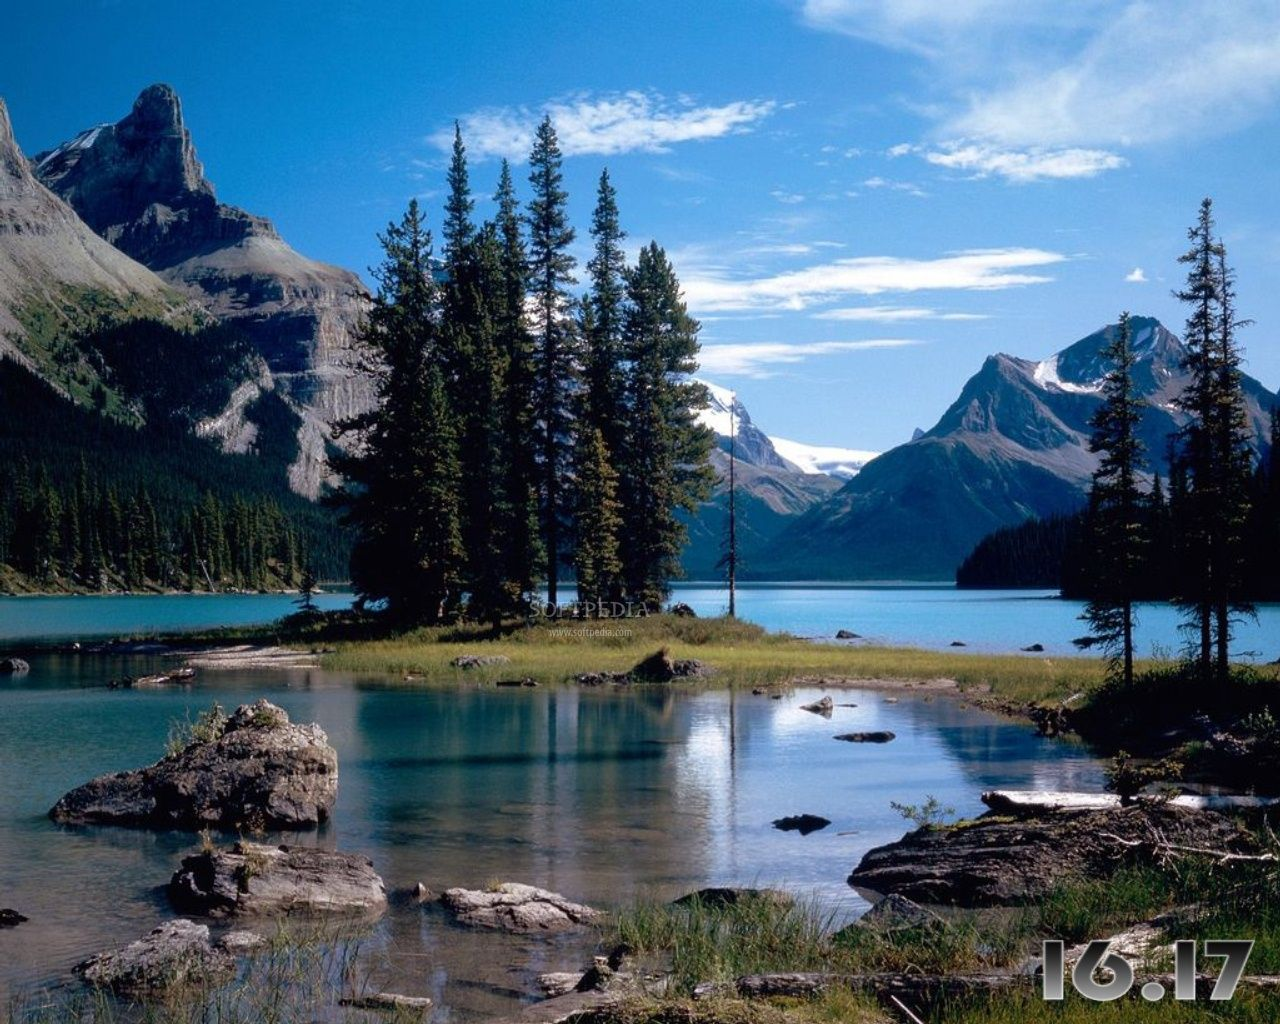 Screensavers Free Downloads Canadian Sketches Free Screensaver Screenshot 1 This Is One Of The Beautiful Scenery Pictures Maligne Lake National Parks